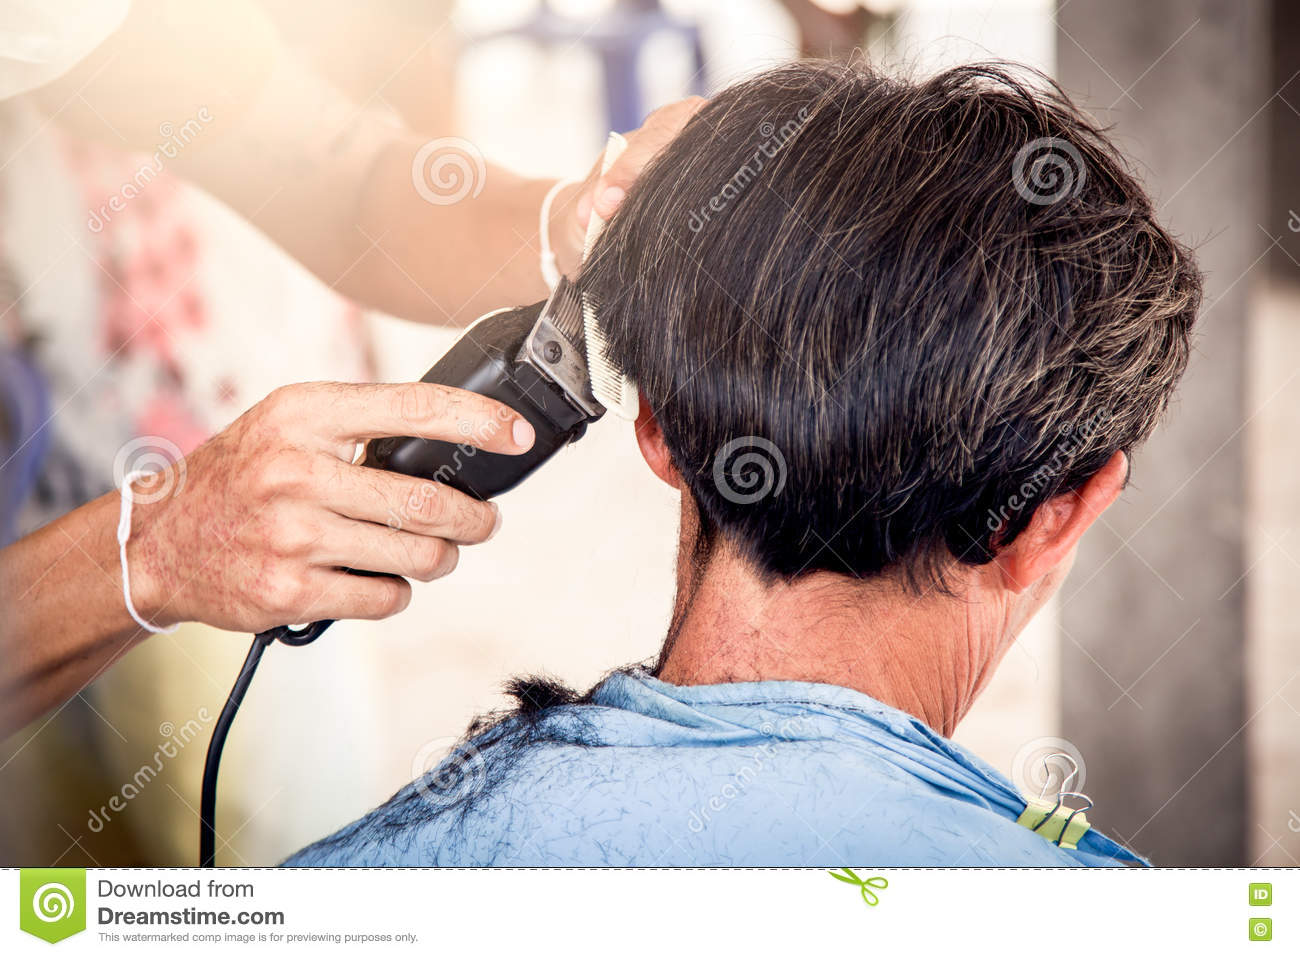 Old Man Having A Haircut With A Hair Clippers In Barber Shop Stock ...